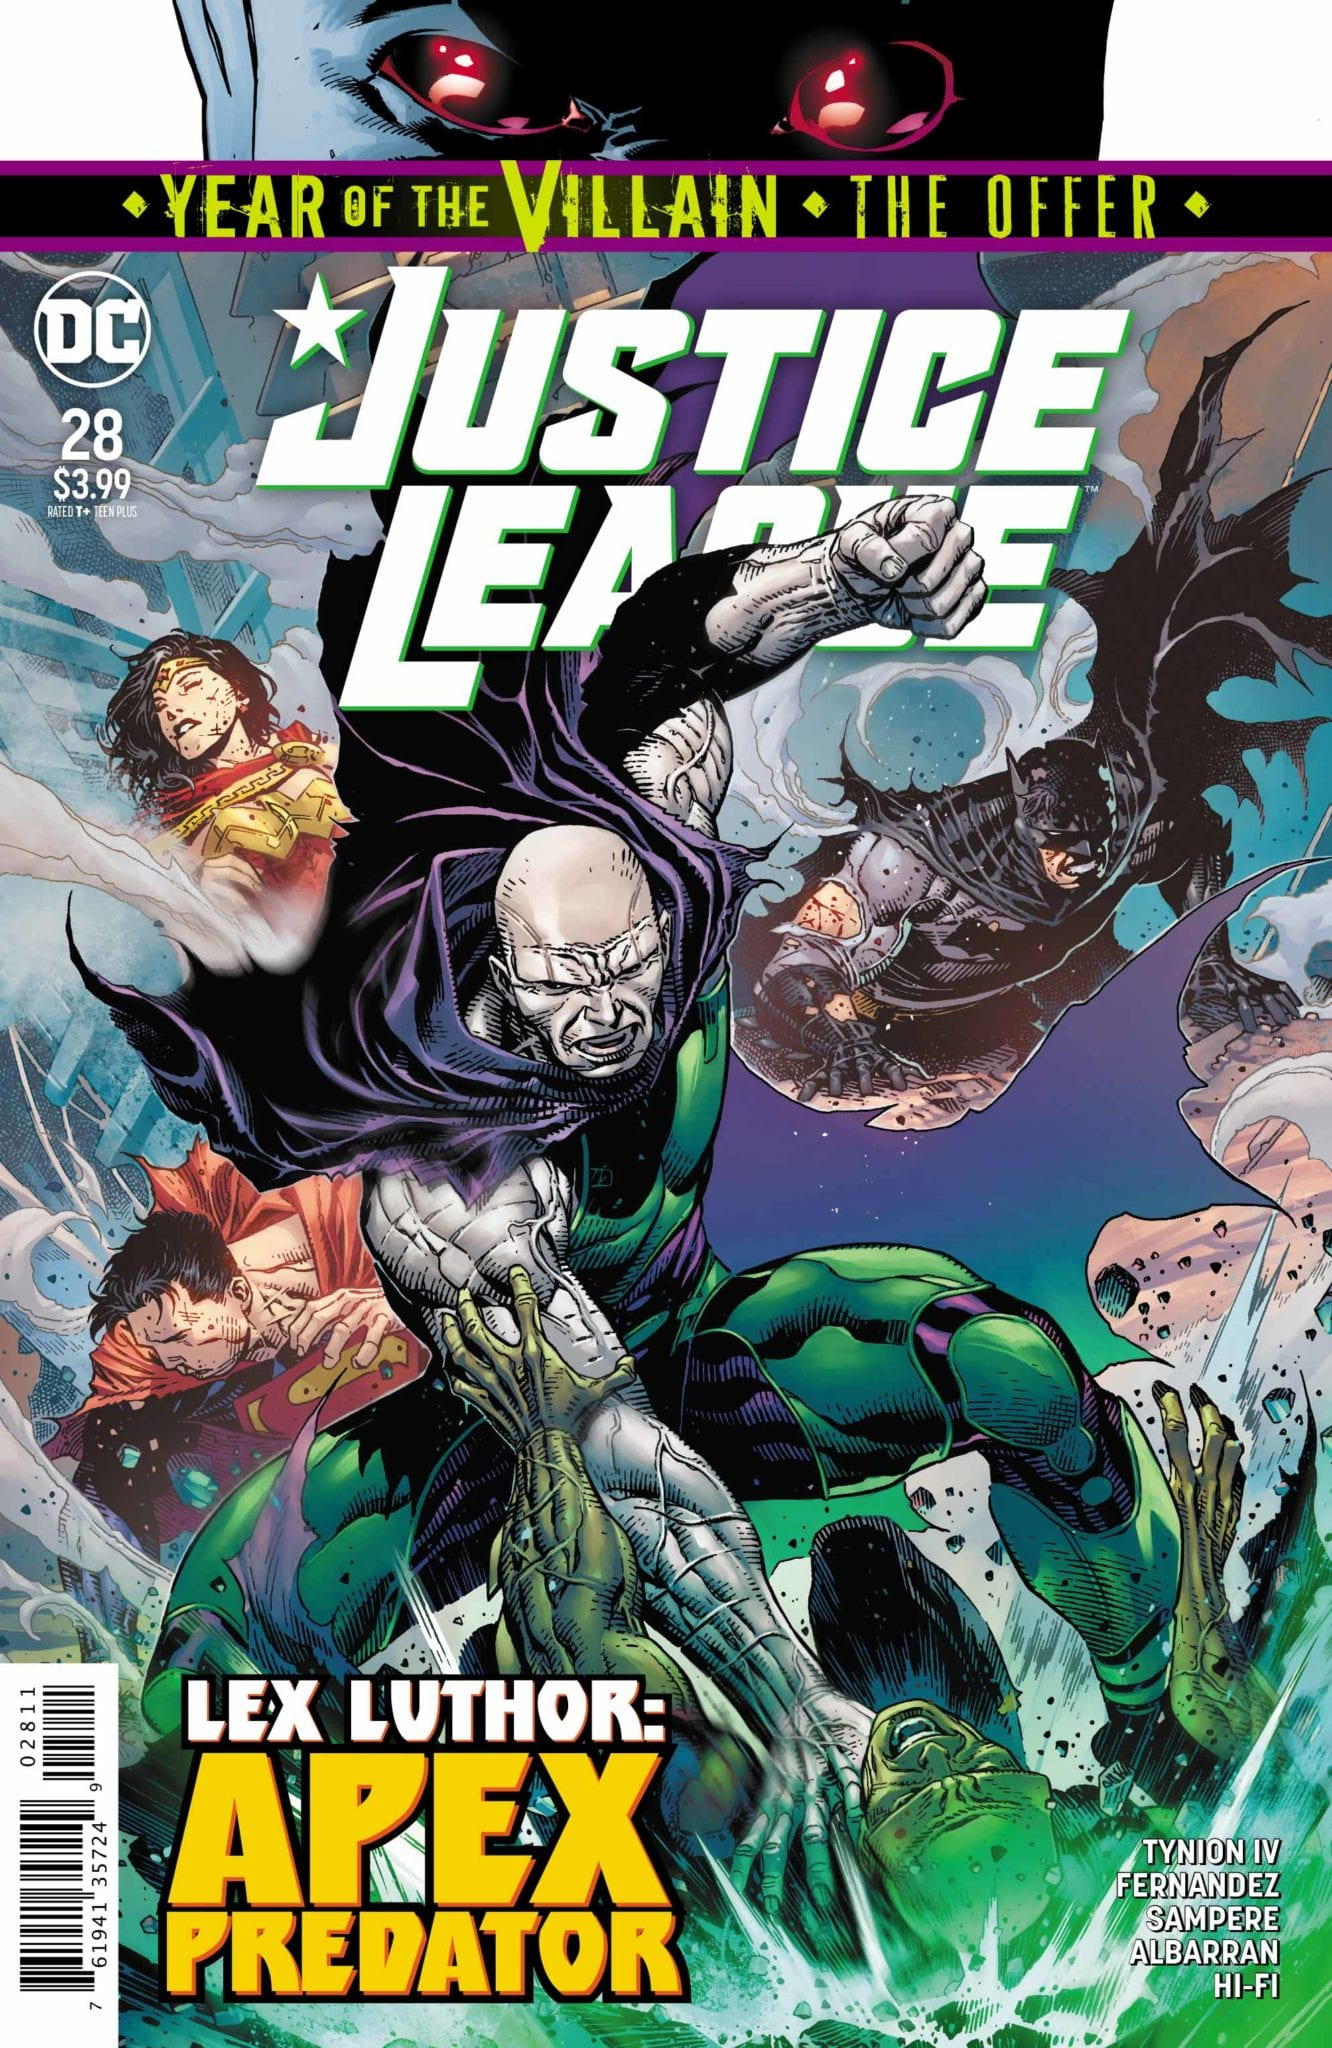 Justice League #28 Cover Lex Luthor